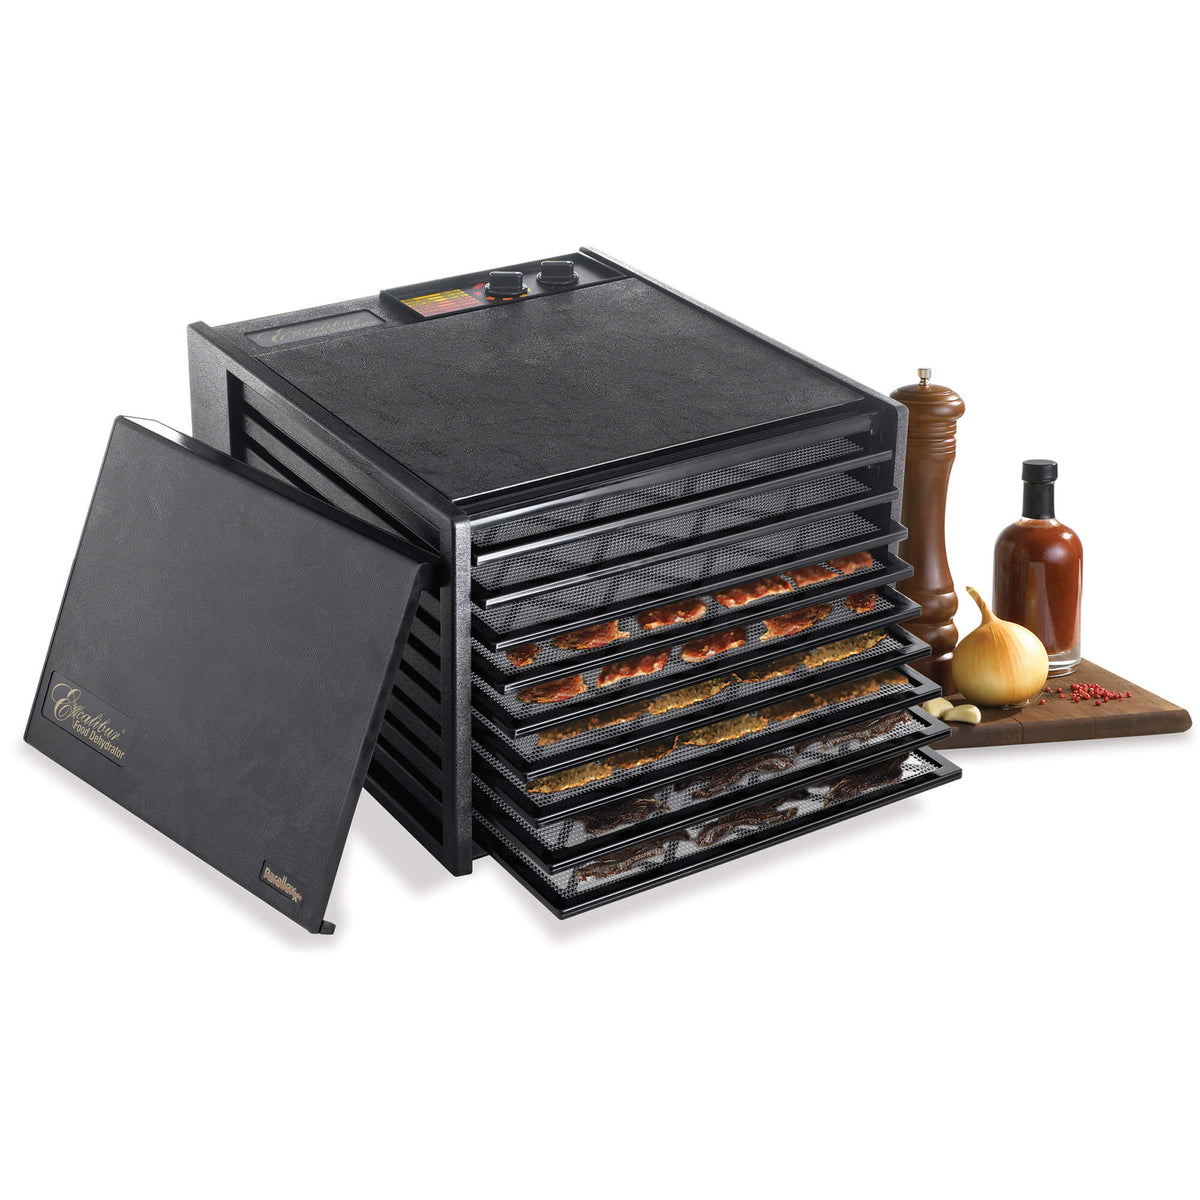 Excalibur 4926TB black 9 tray dehydrator with door propped to the side and jerky on the trays.